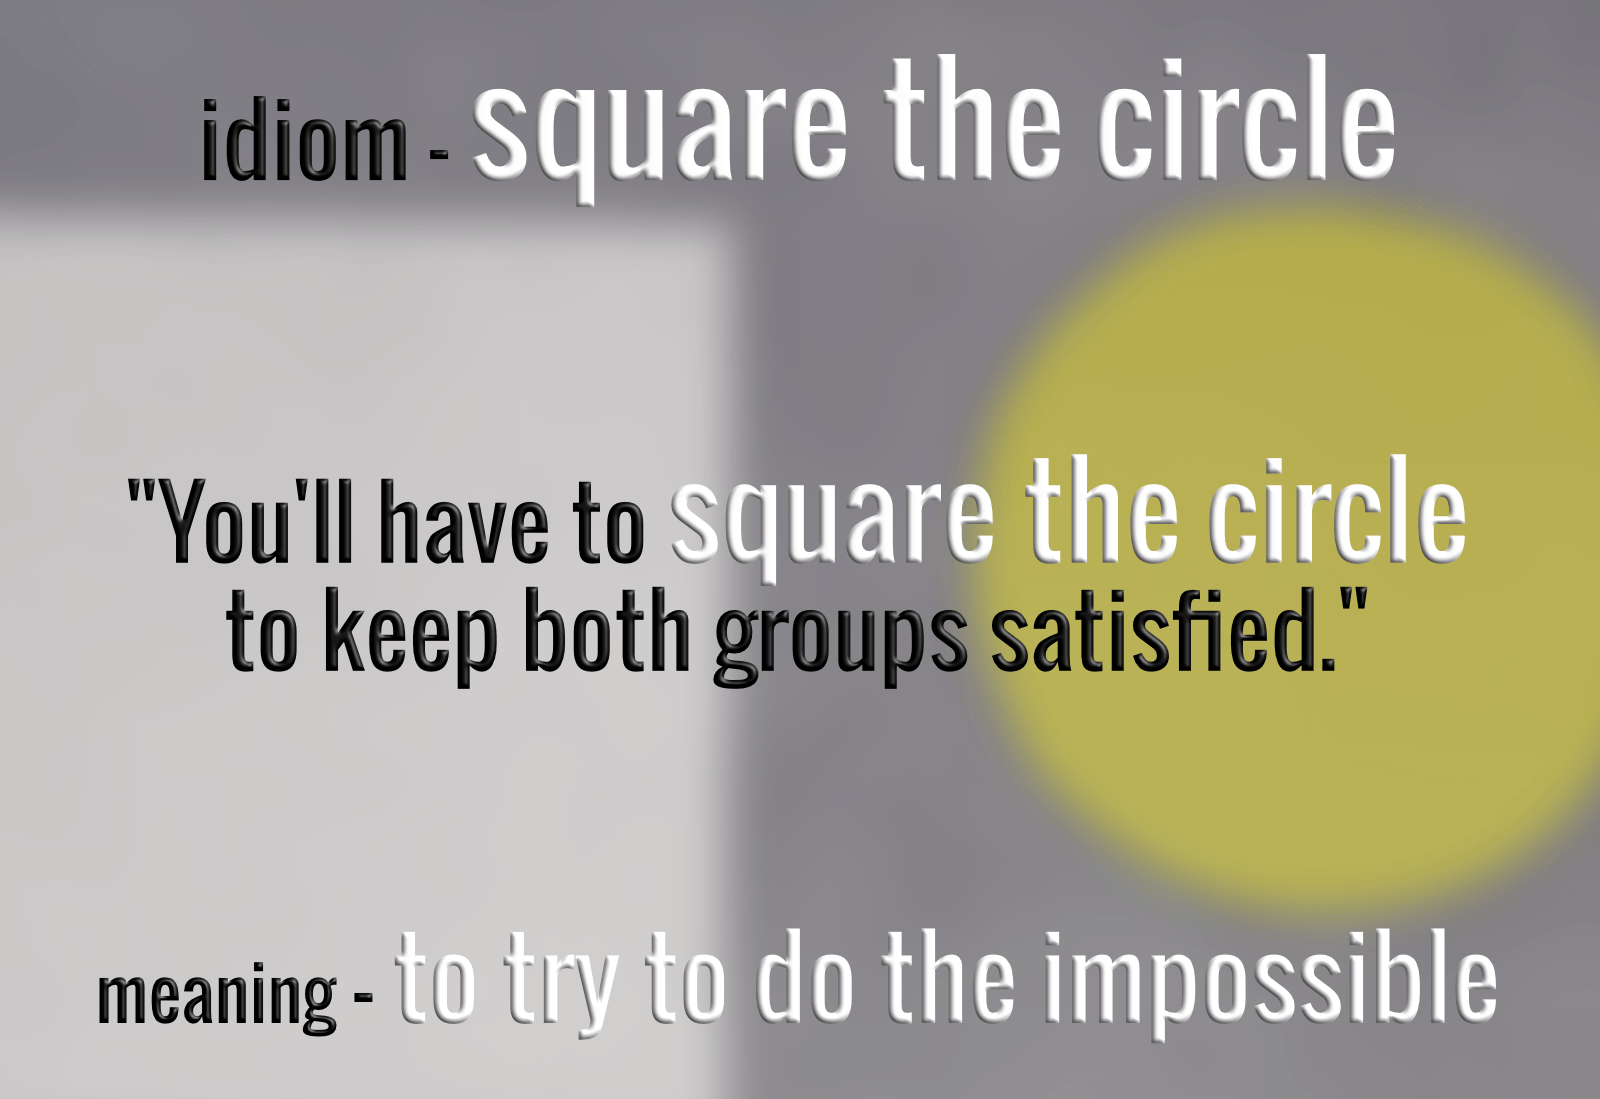 idiom-square-the-circle